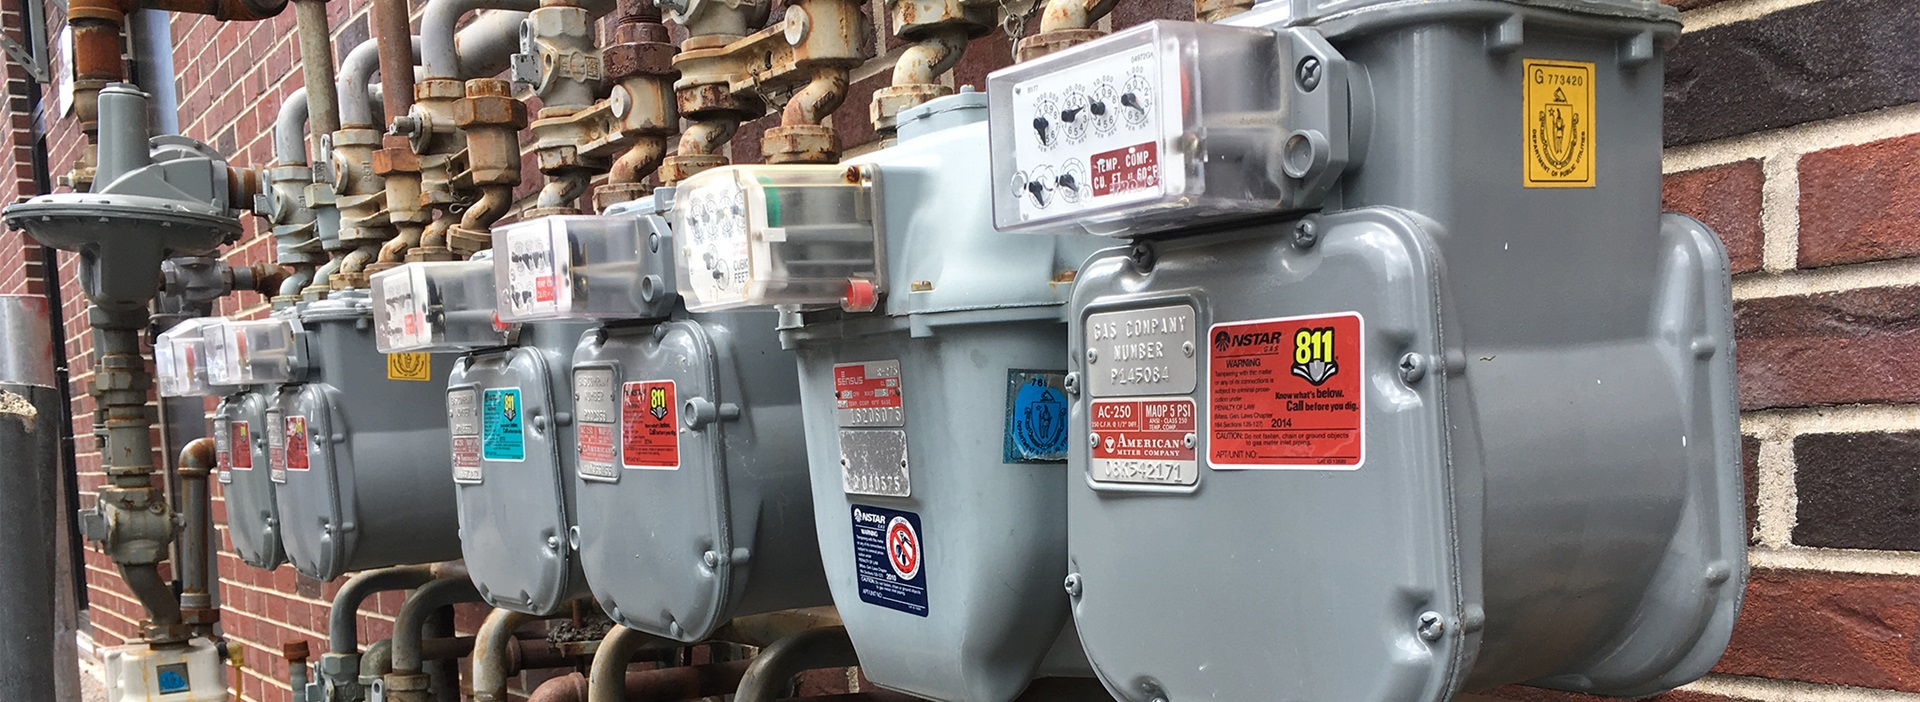 Bank of gas meters